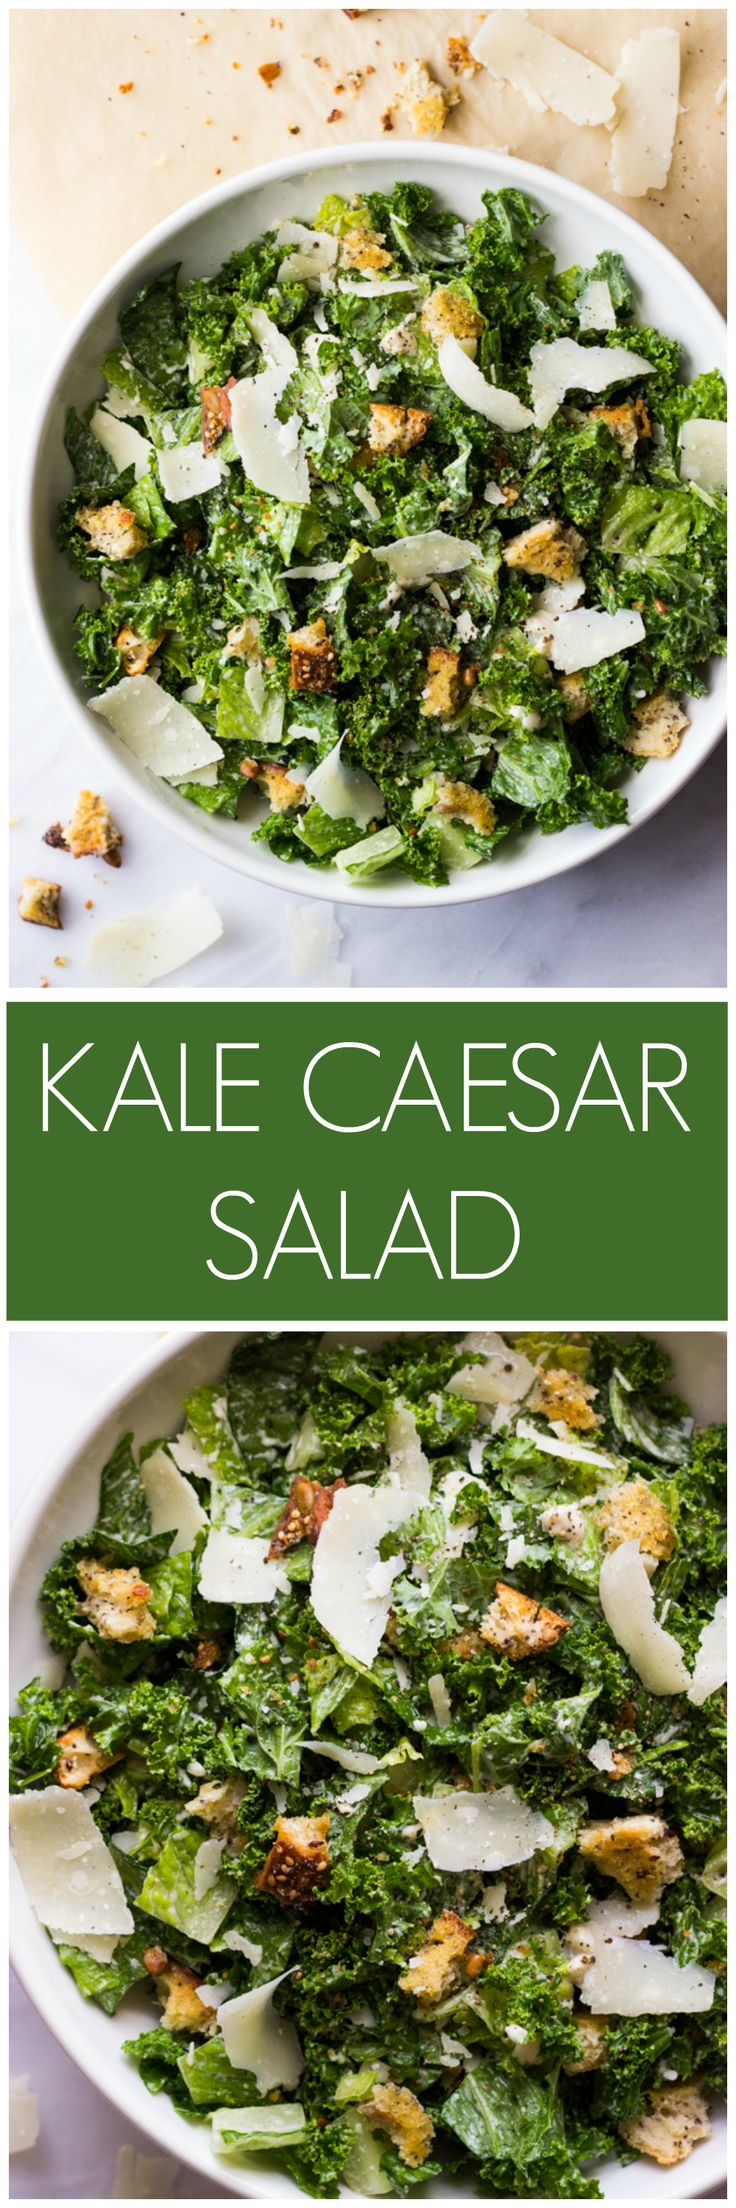 Kale Caesar Salad - nutritious kale and romaine caesar salad with greek yogurt caesar dressing | littlebroken.com @littlebroken